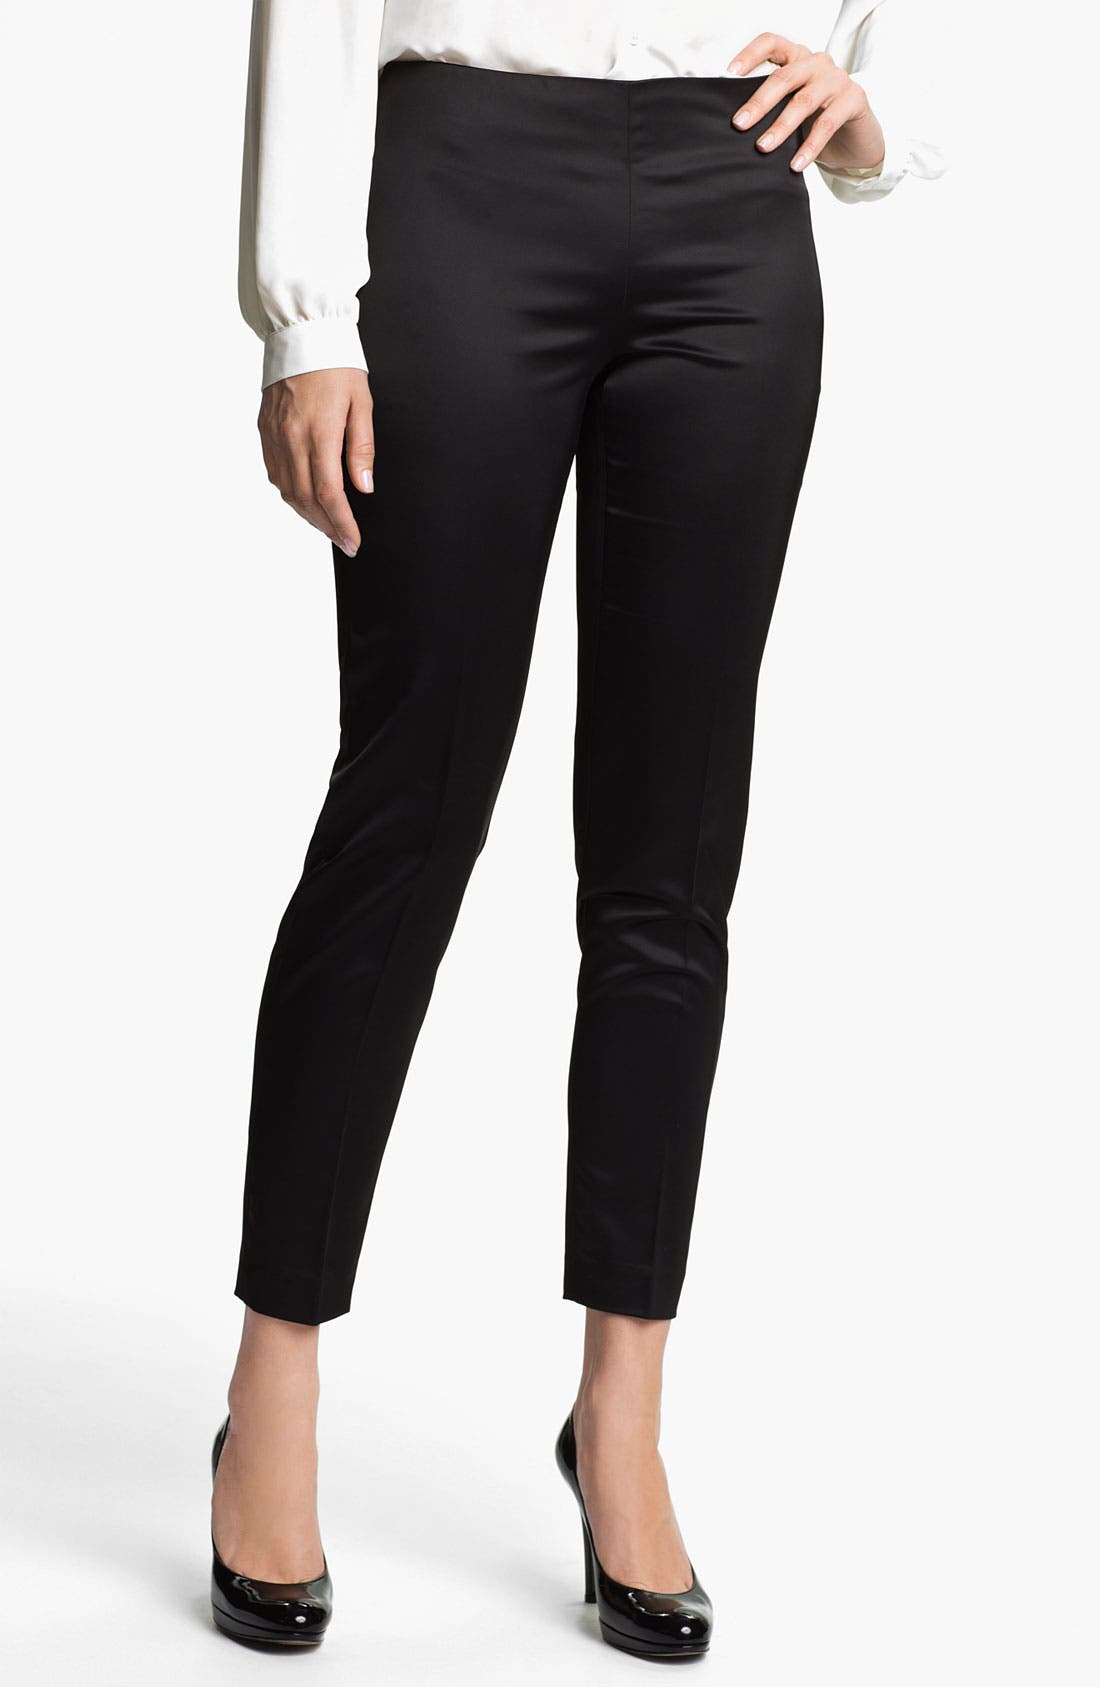 Alternate Image 1 Selected - Vince Camuto Satin Ankle Pants